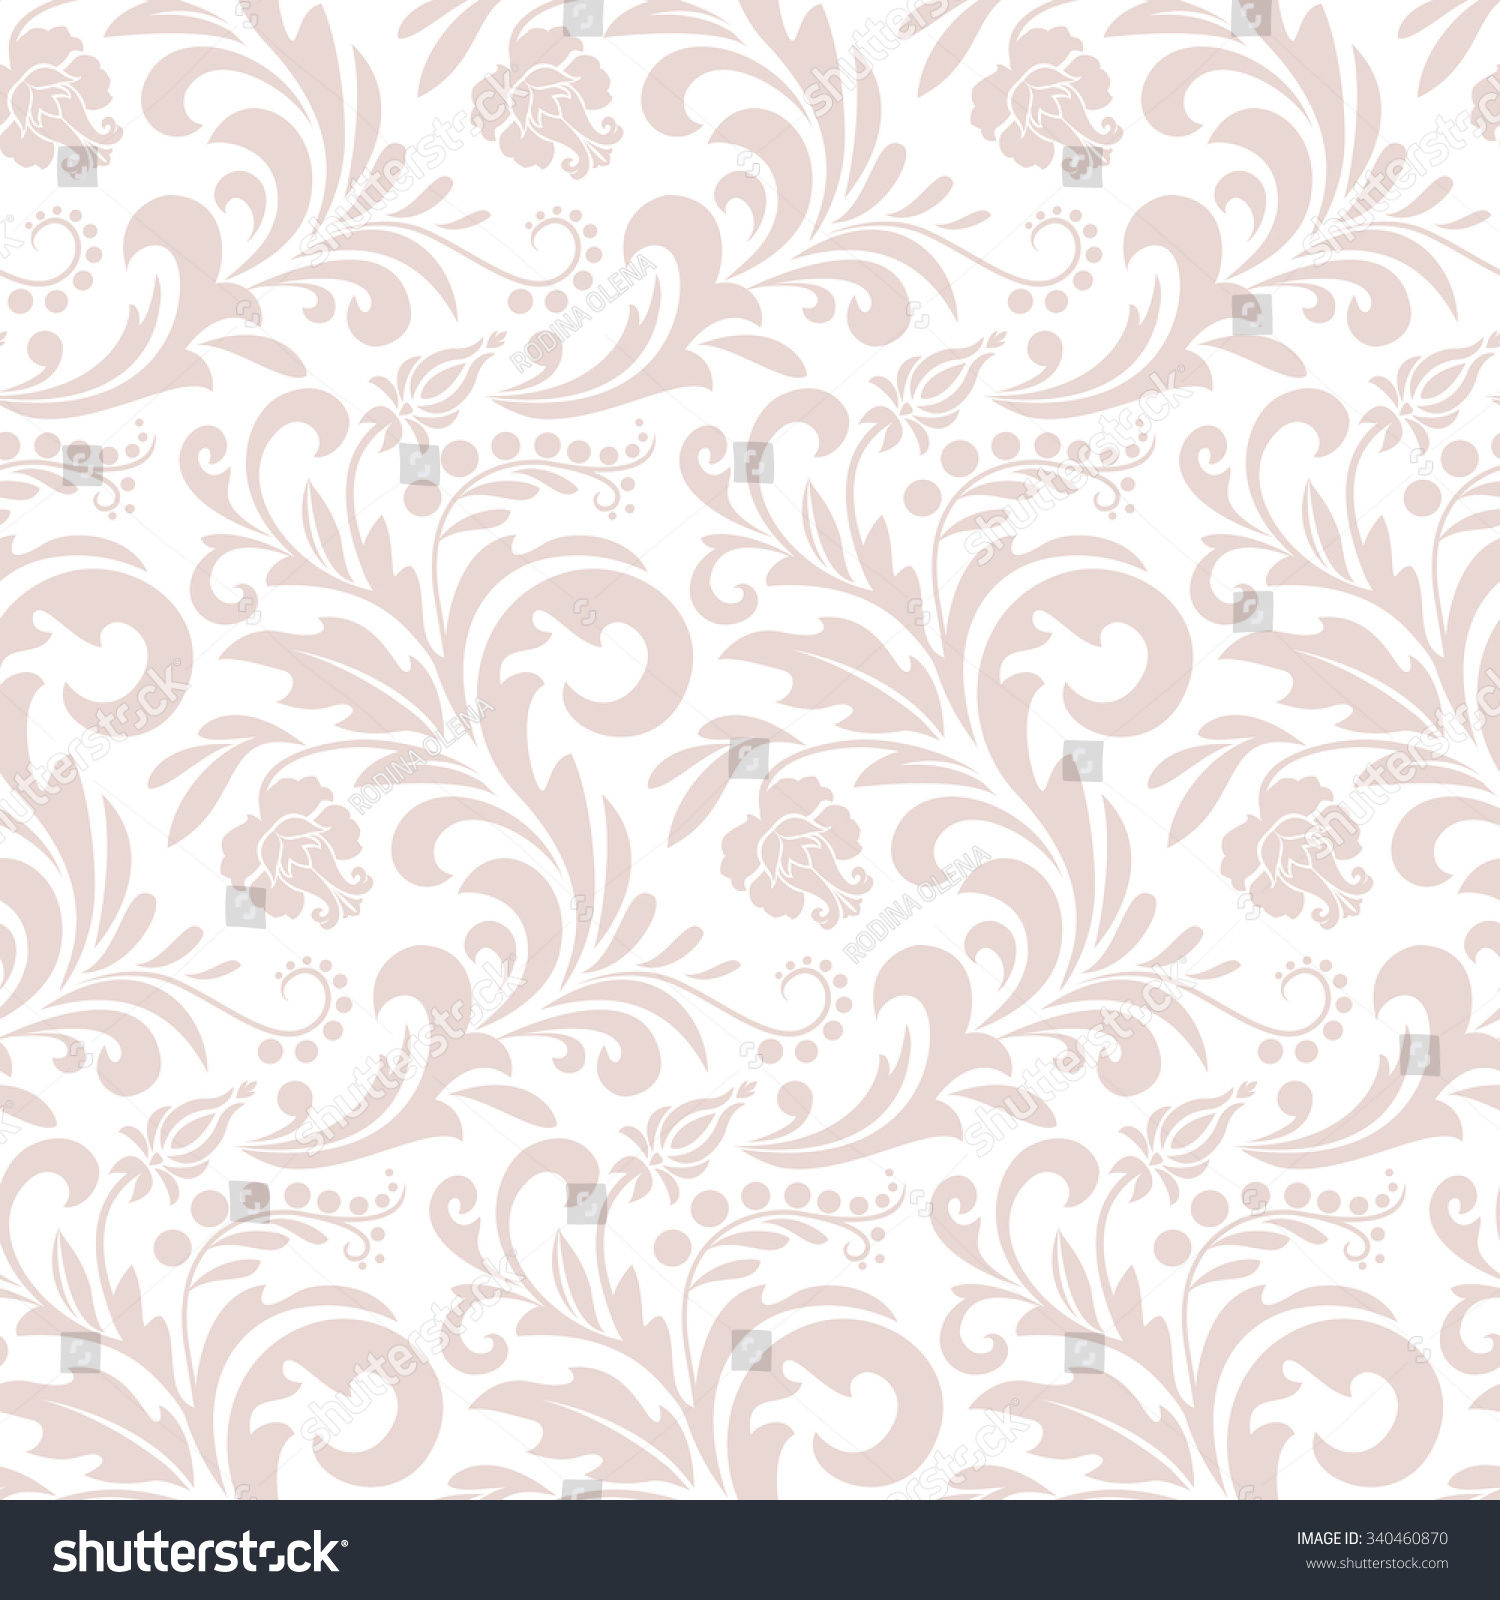 Pink baroque style wallpaper pictures to pin on pinterest for Baroque style wallpaper